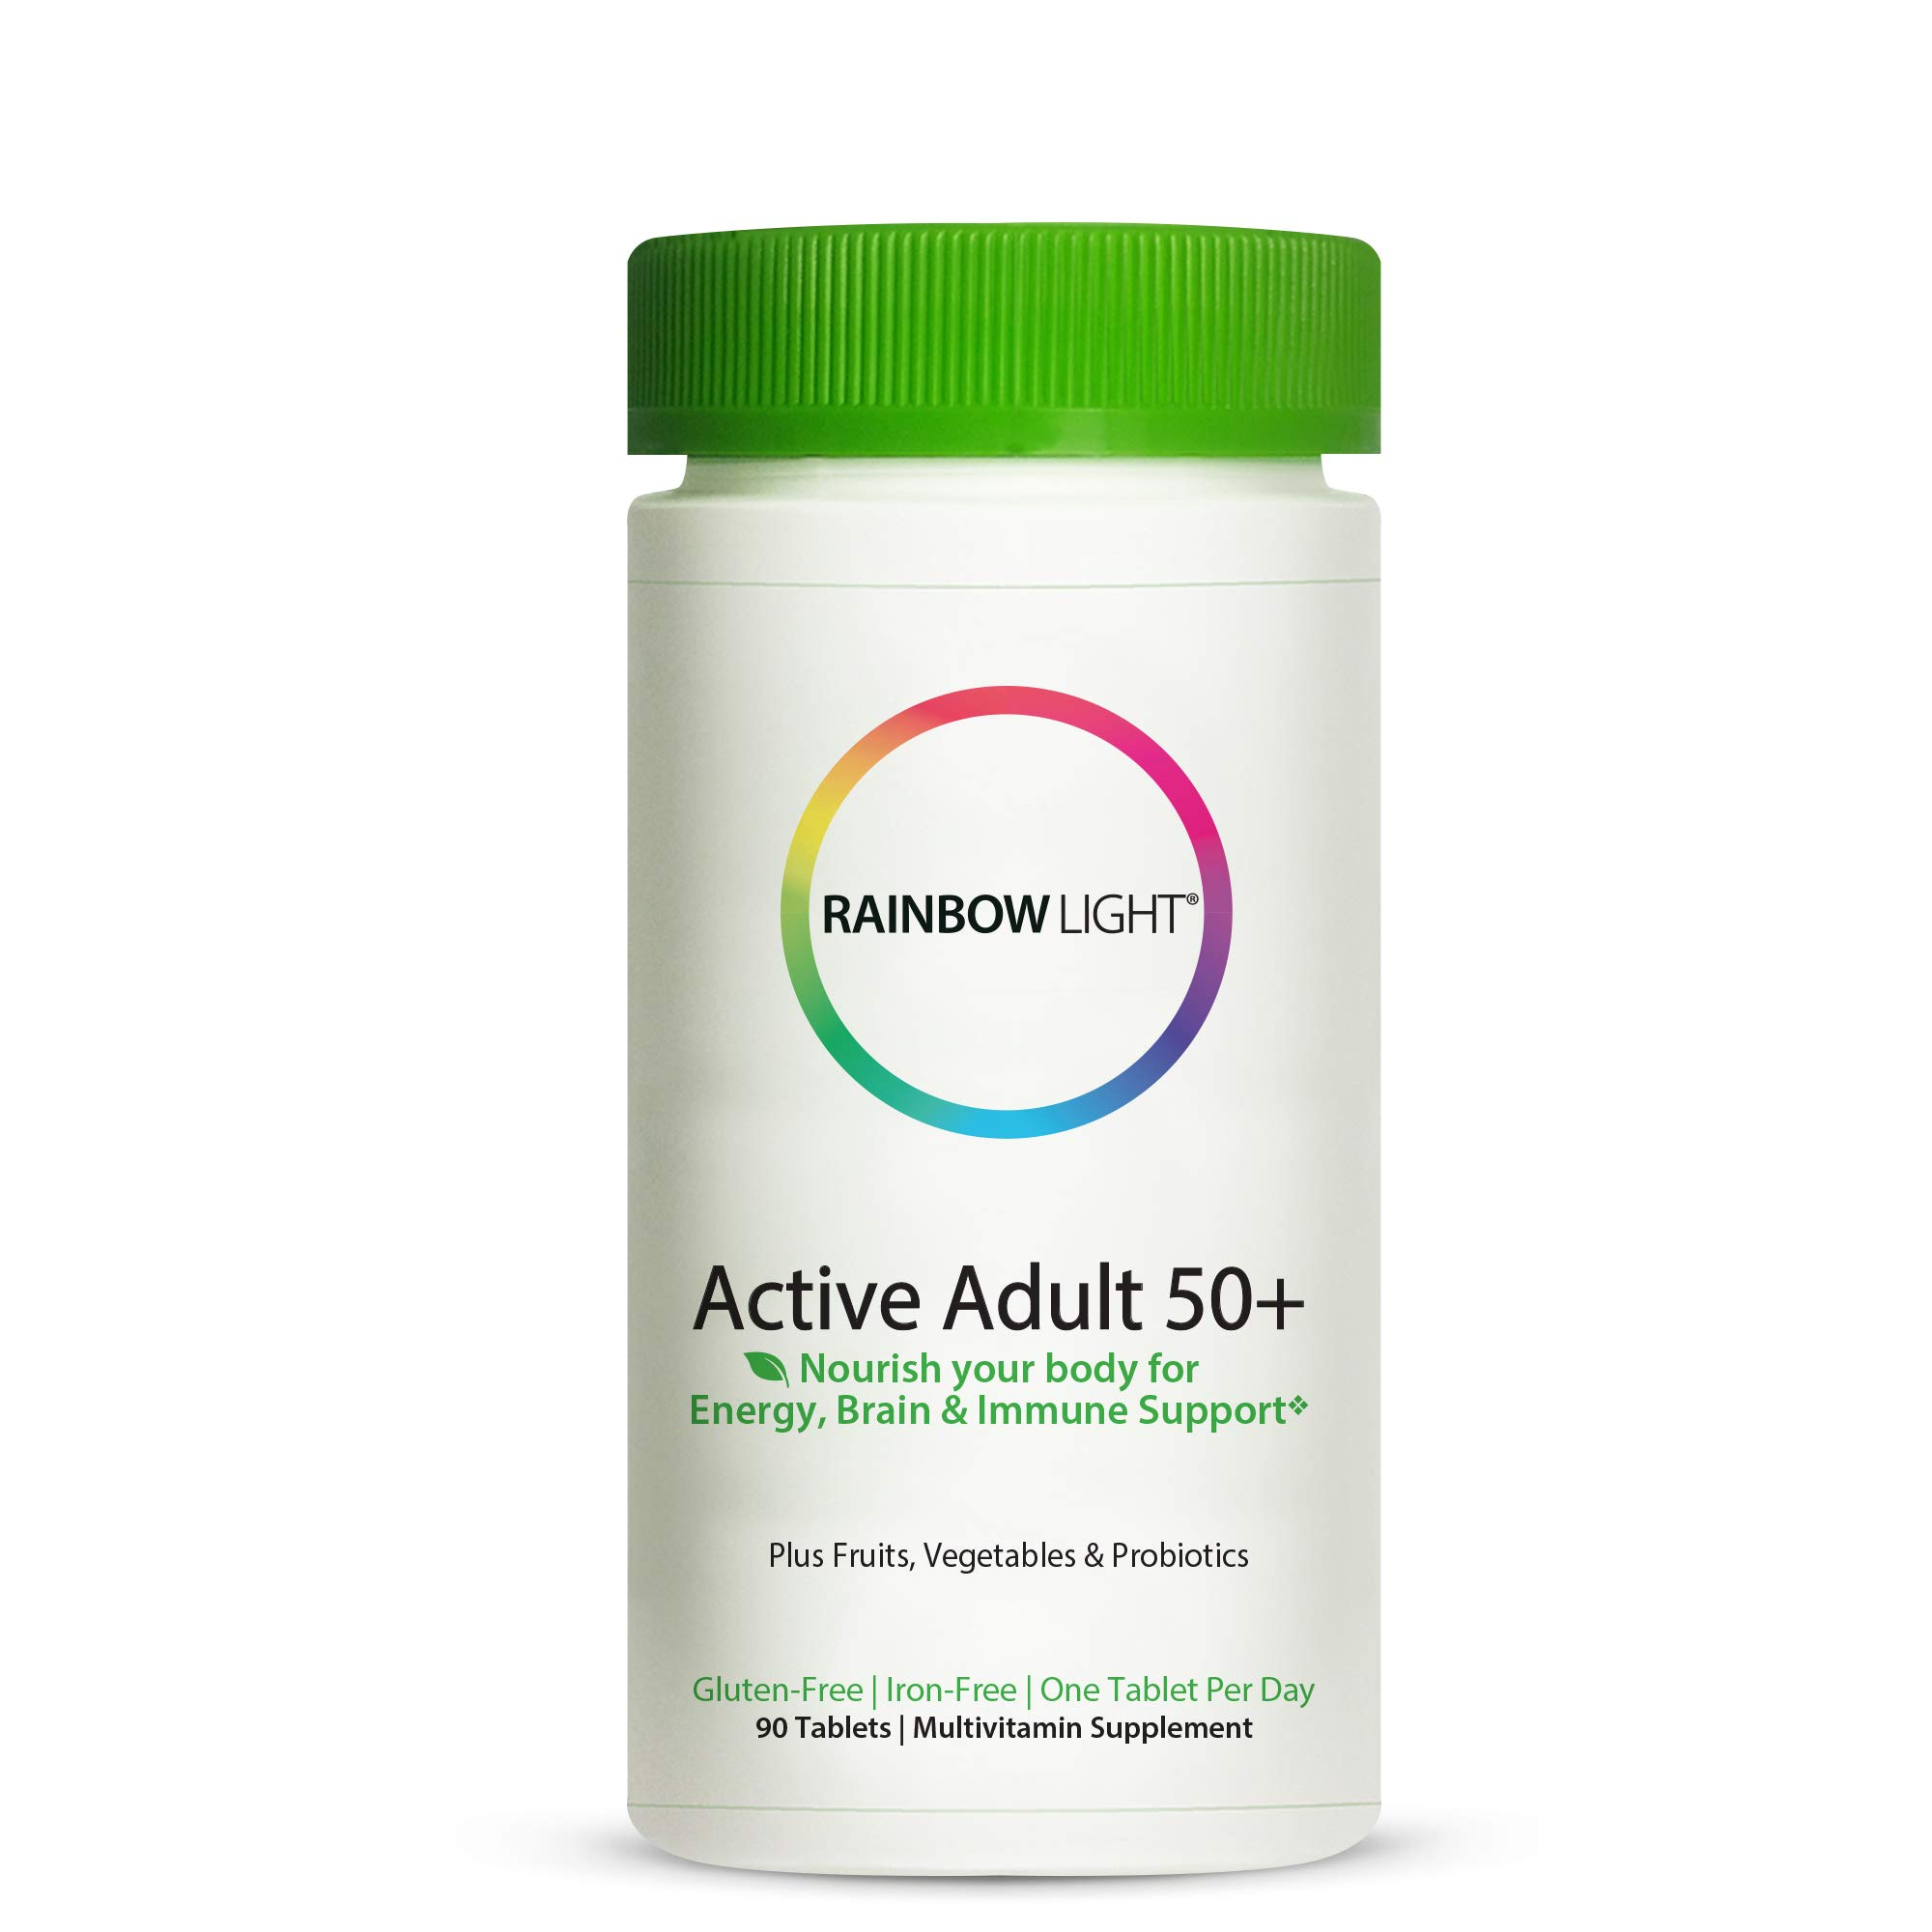 Rainbow Light Active Adult 50+, Once-Daily Multivitamin - 90 Tablets (Packaging May Vary) by Rainbow Light